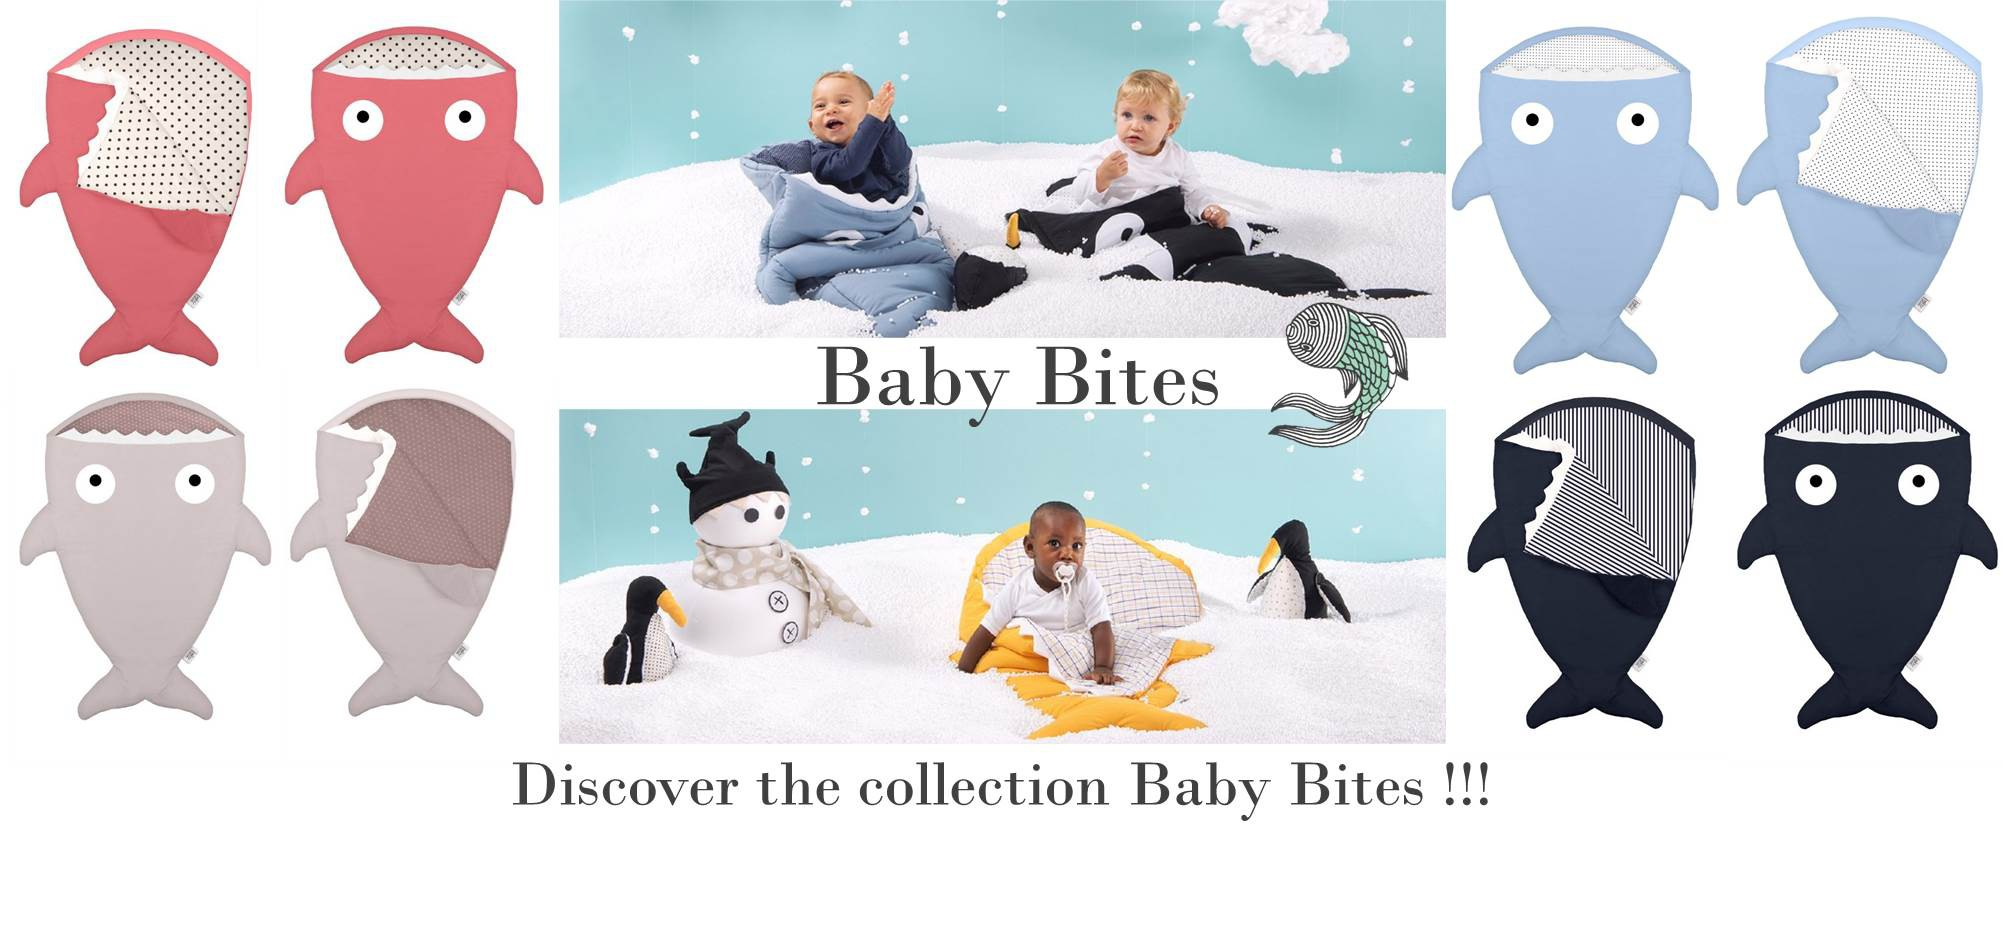 Discover the collection Baby Bites